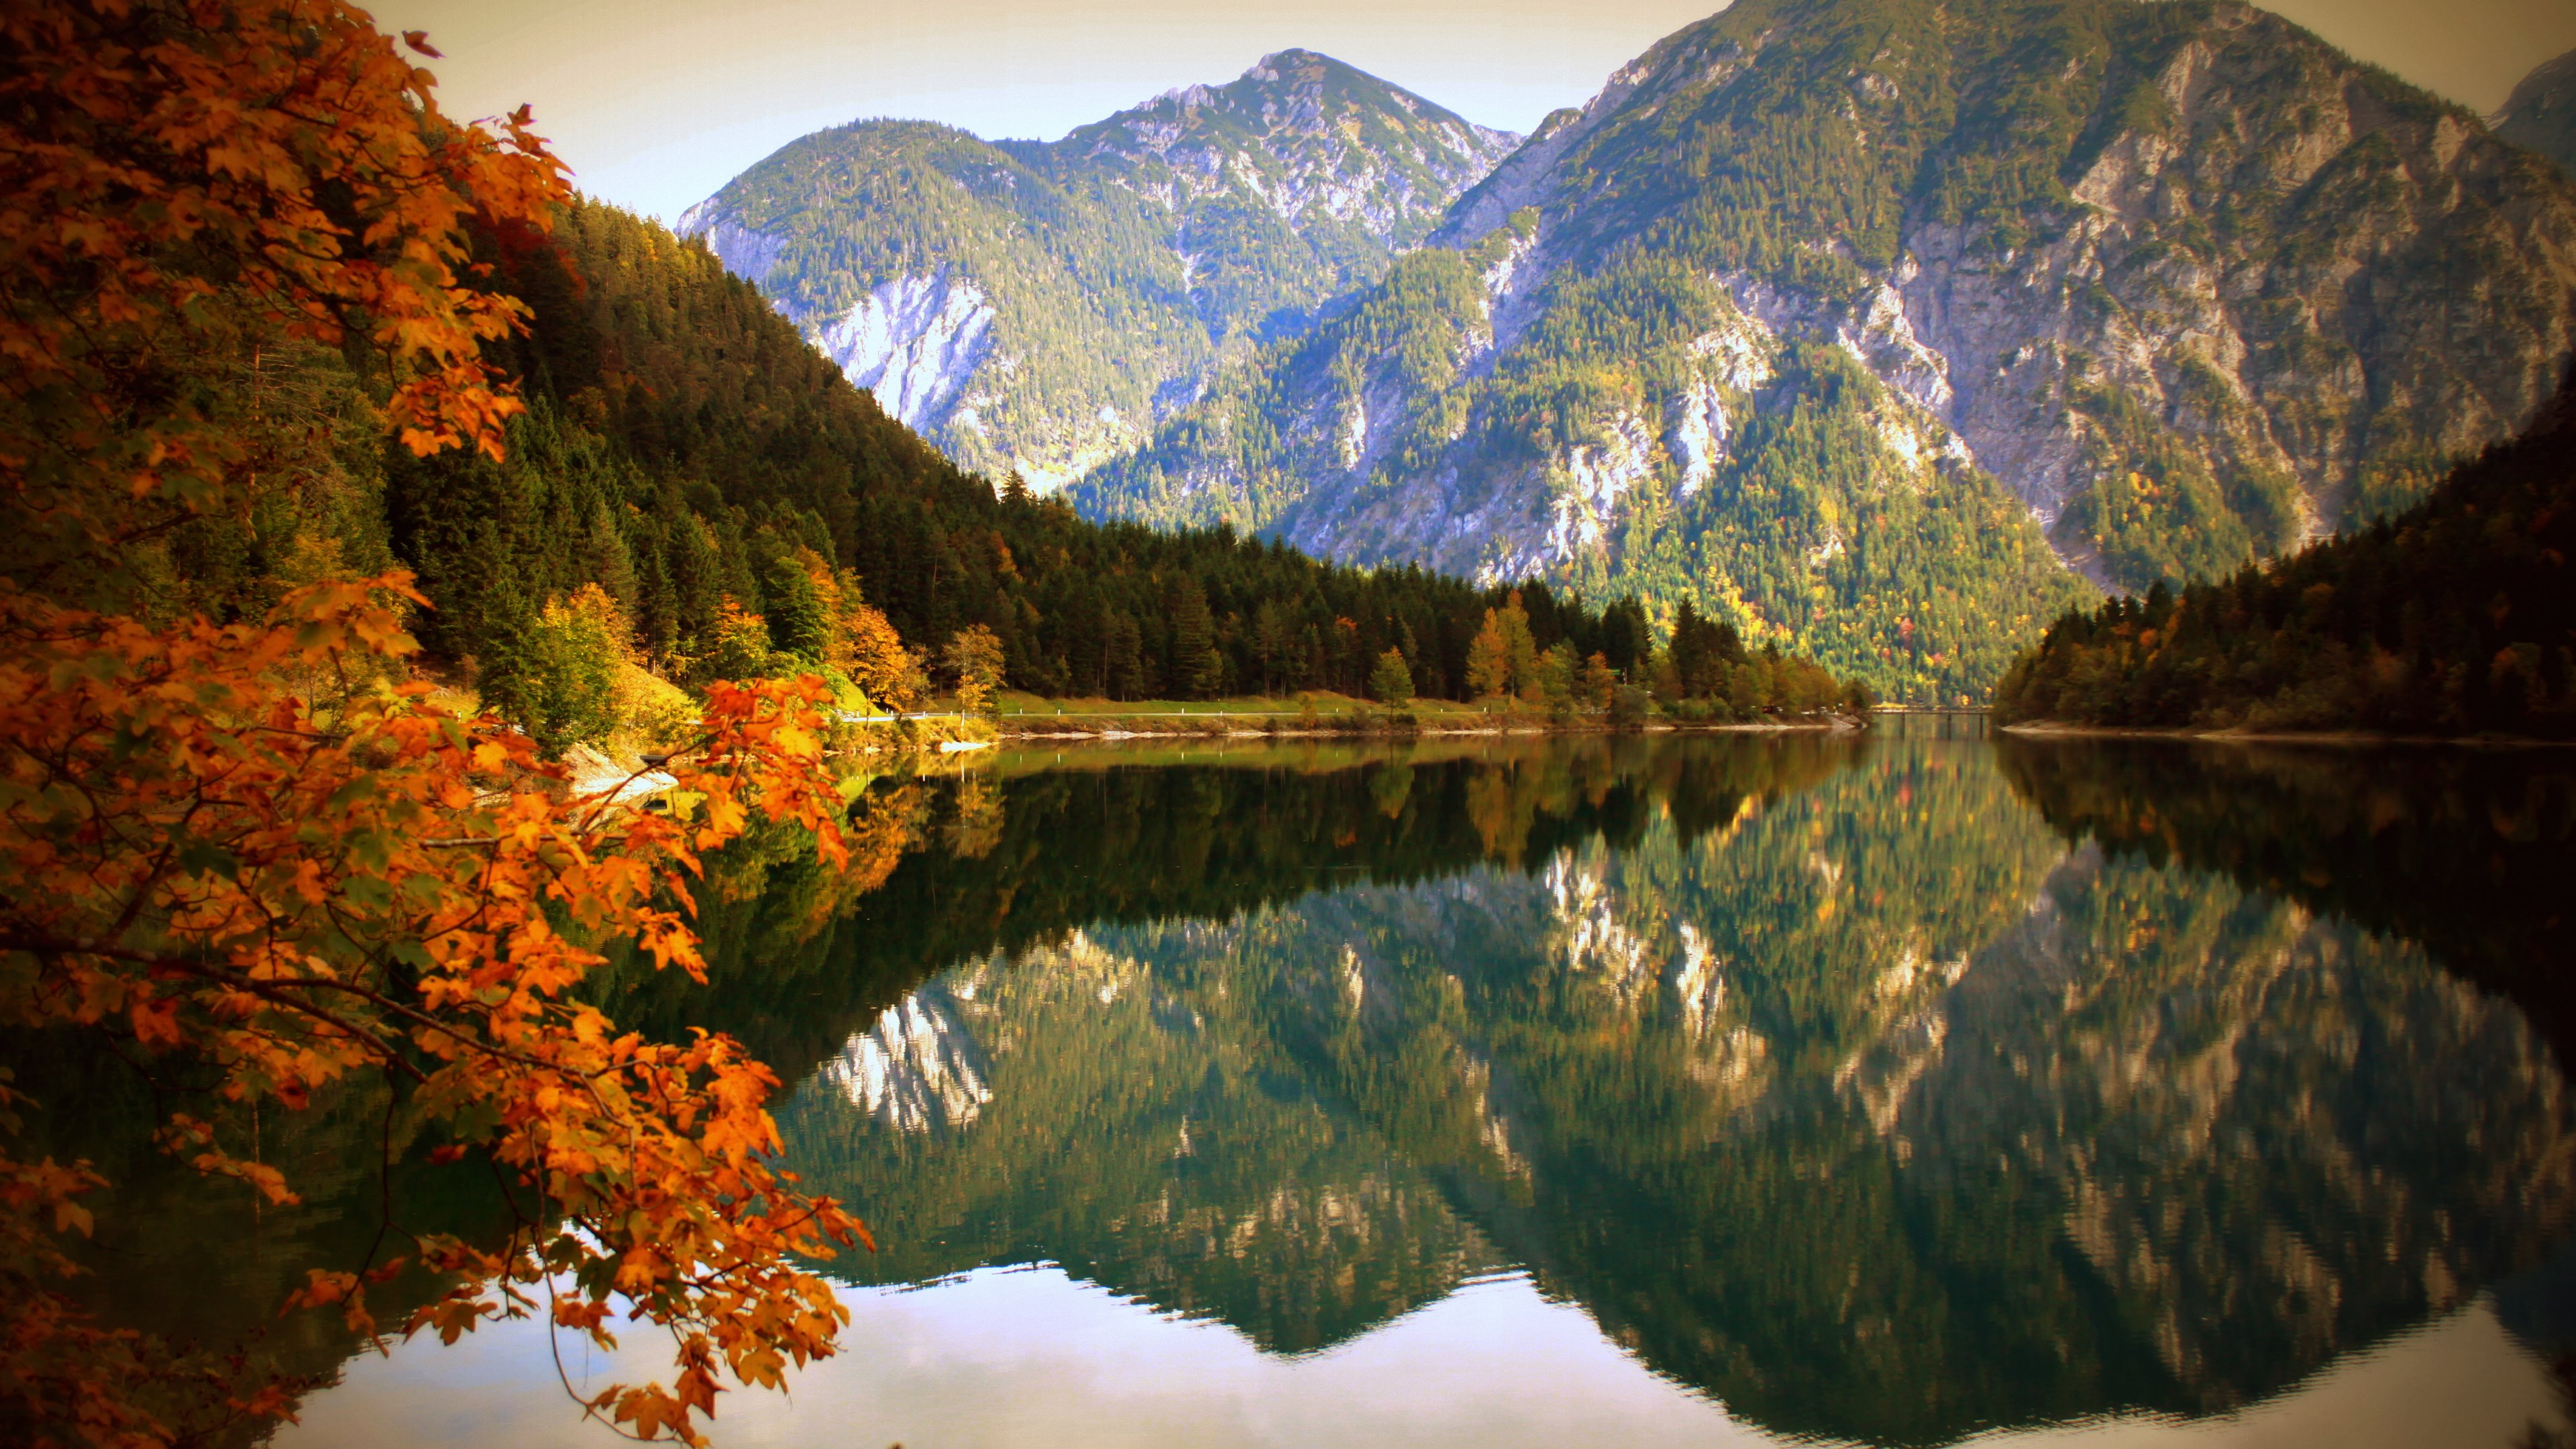 Nature Lake and Mountains in Autumn Wallpaper 3840x2160